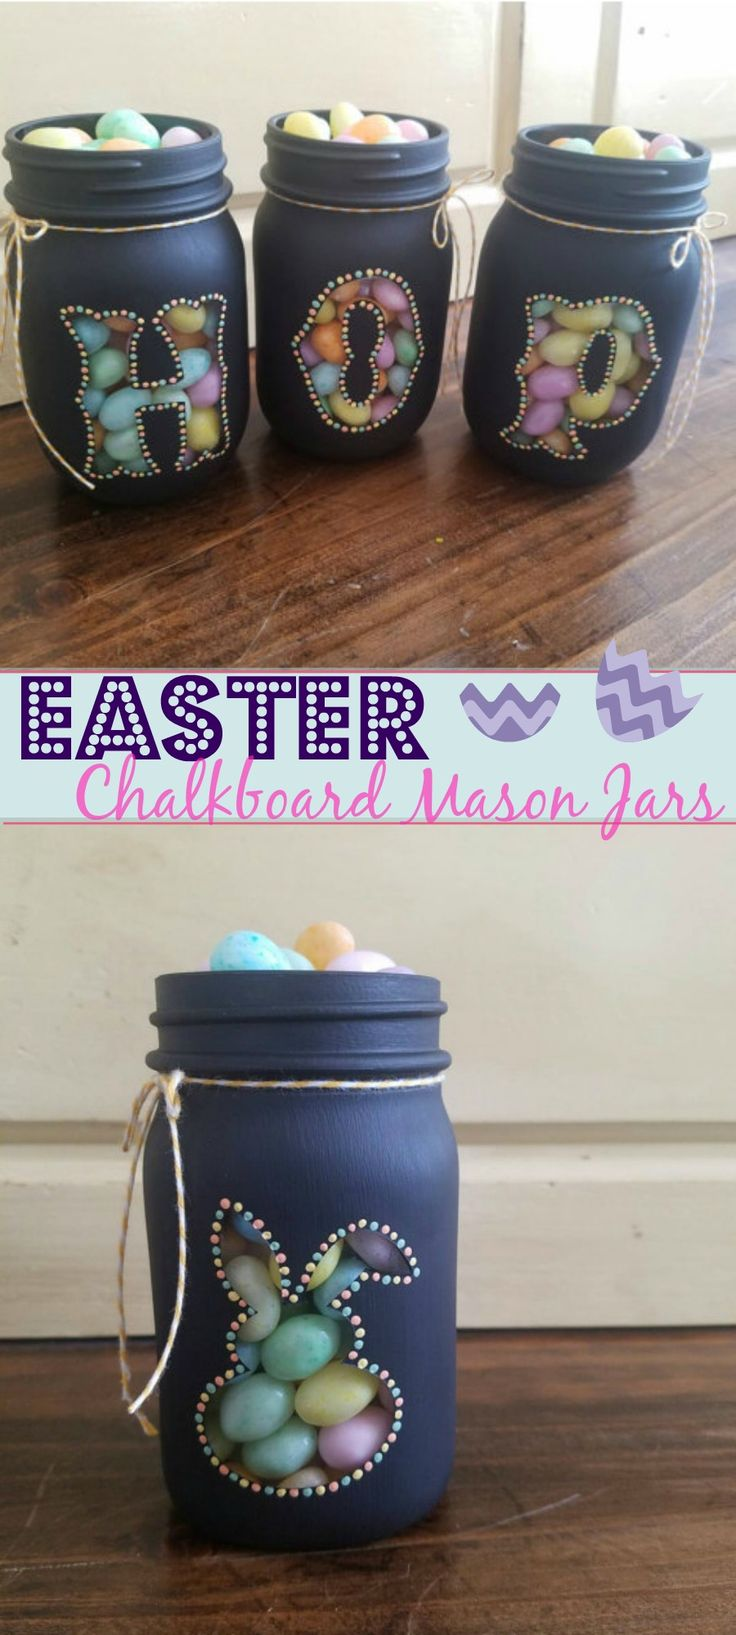 Cute Easter and Spring Chalkboard Mason Jars ... Excited that spring is almost here! ...#afflink #springdecor #easterdecor #masonjar #masonjarcrafts #easter #spring